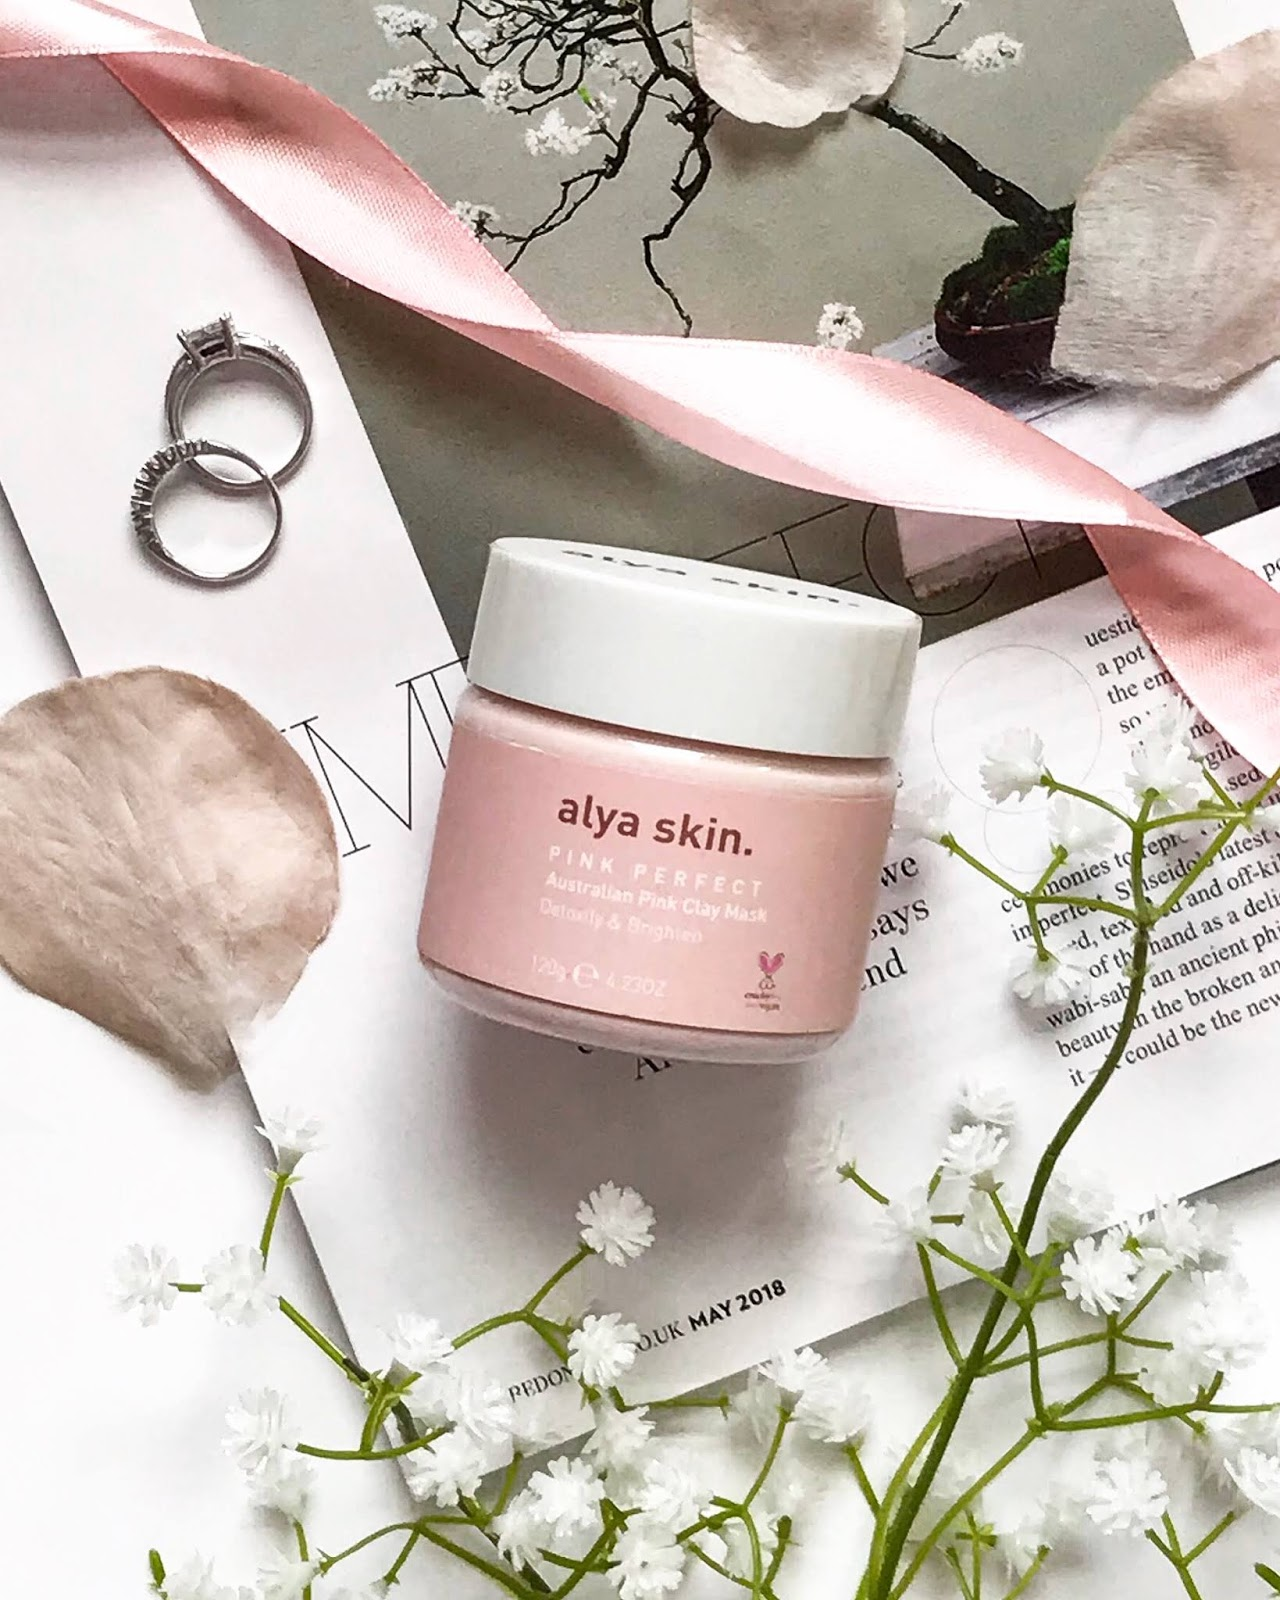 alya skin pink perfect clay mask review blog post